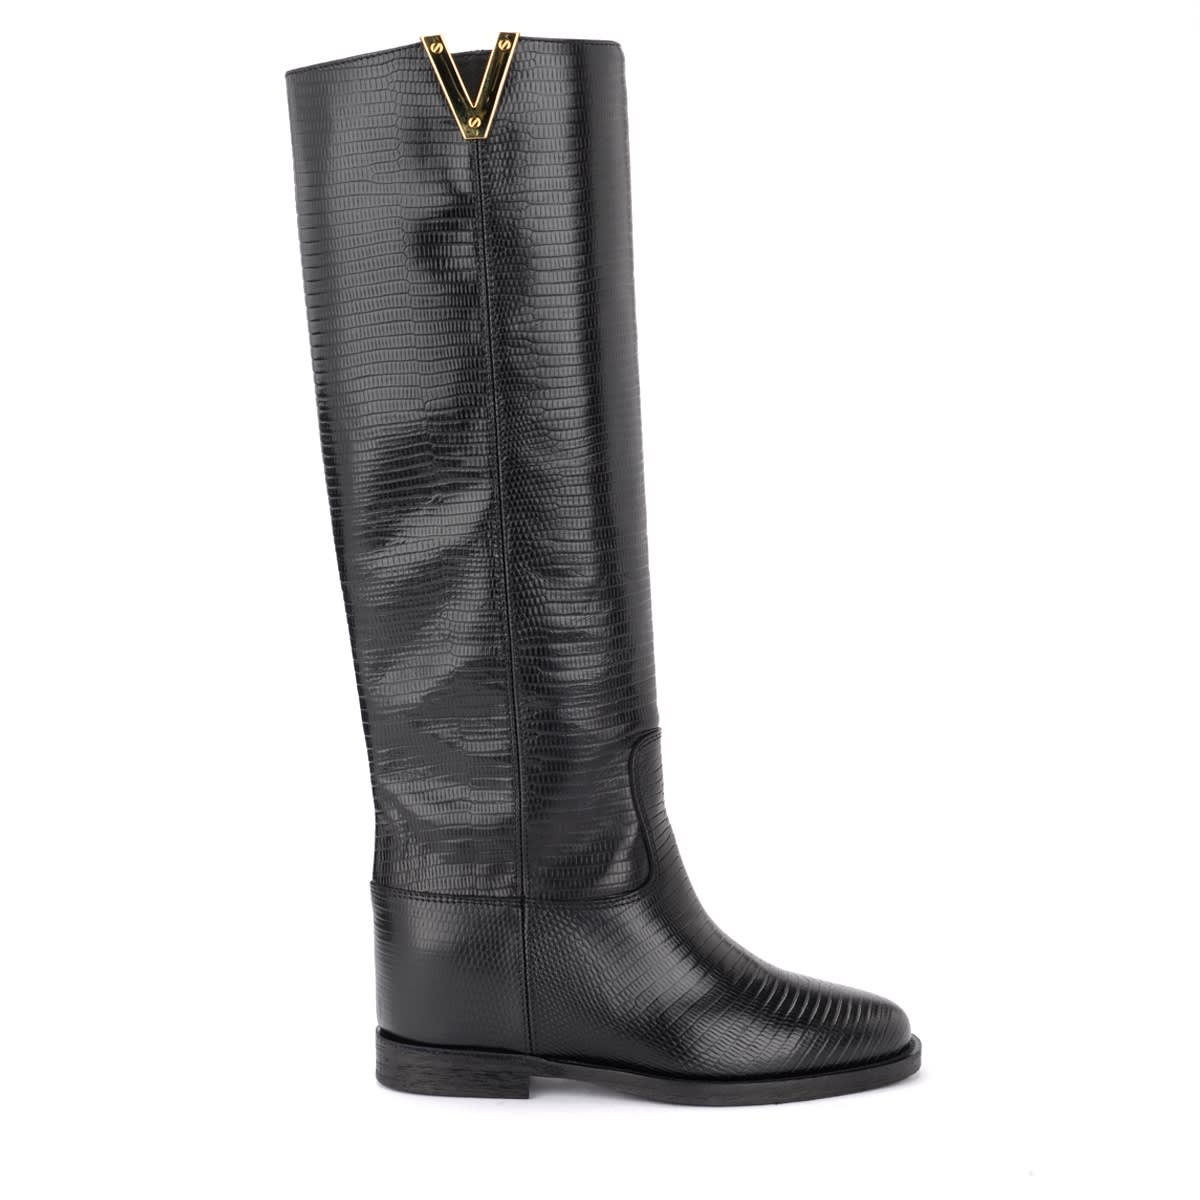 Via Roma 15 BOOT IN BLACK TEJUS PRINT LEATHER WITH GOLDEN V